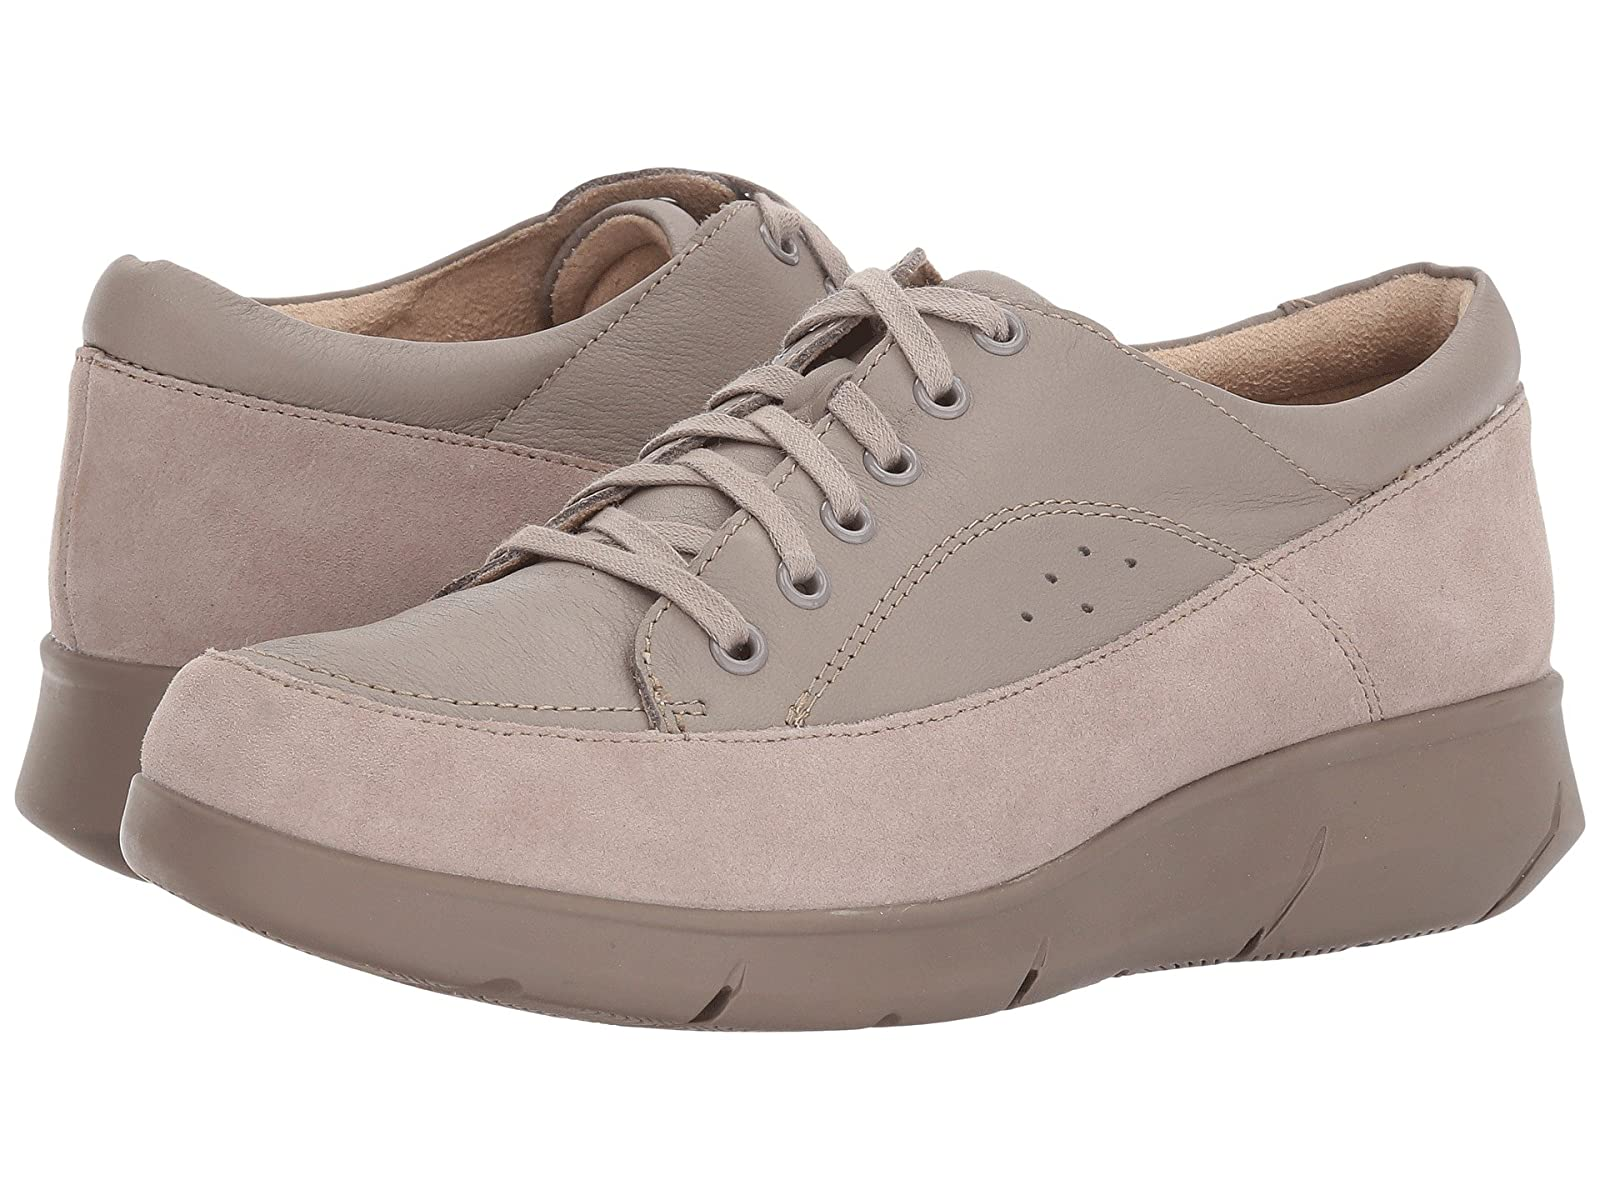 Hush Puppies Dasher MardieAtmospheric grades have affordable shoes